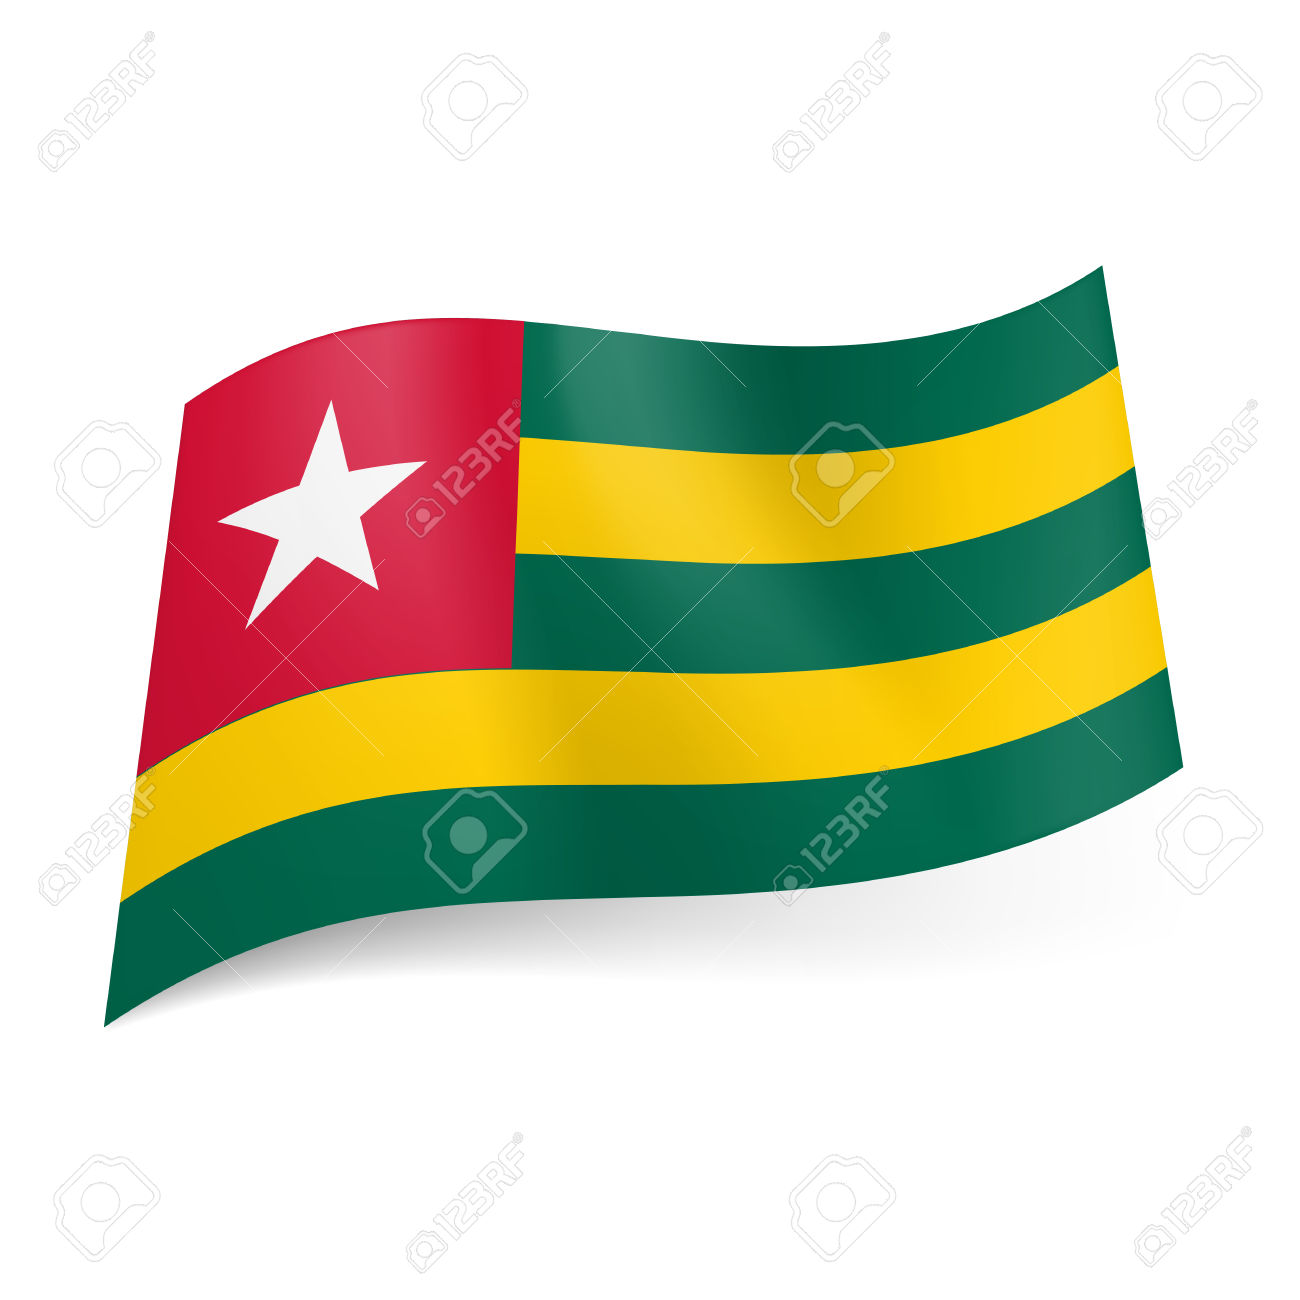 Red green and yellow flags clipart.